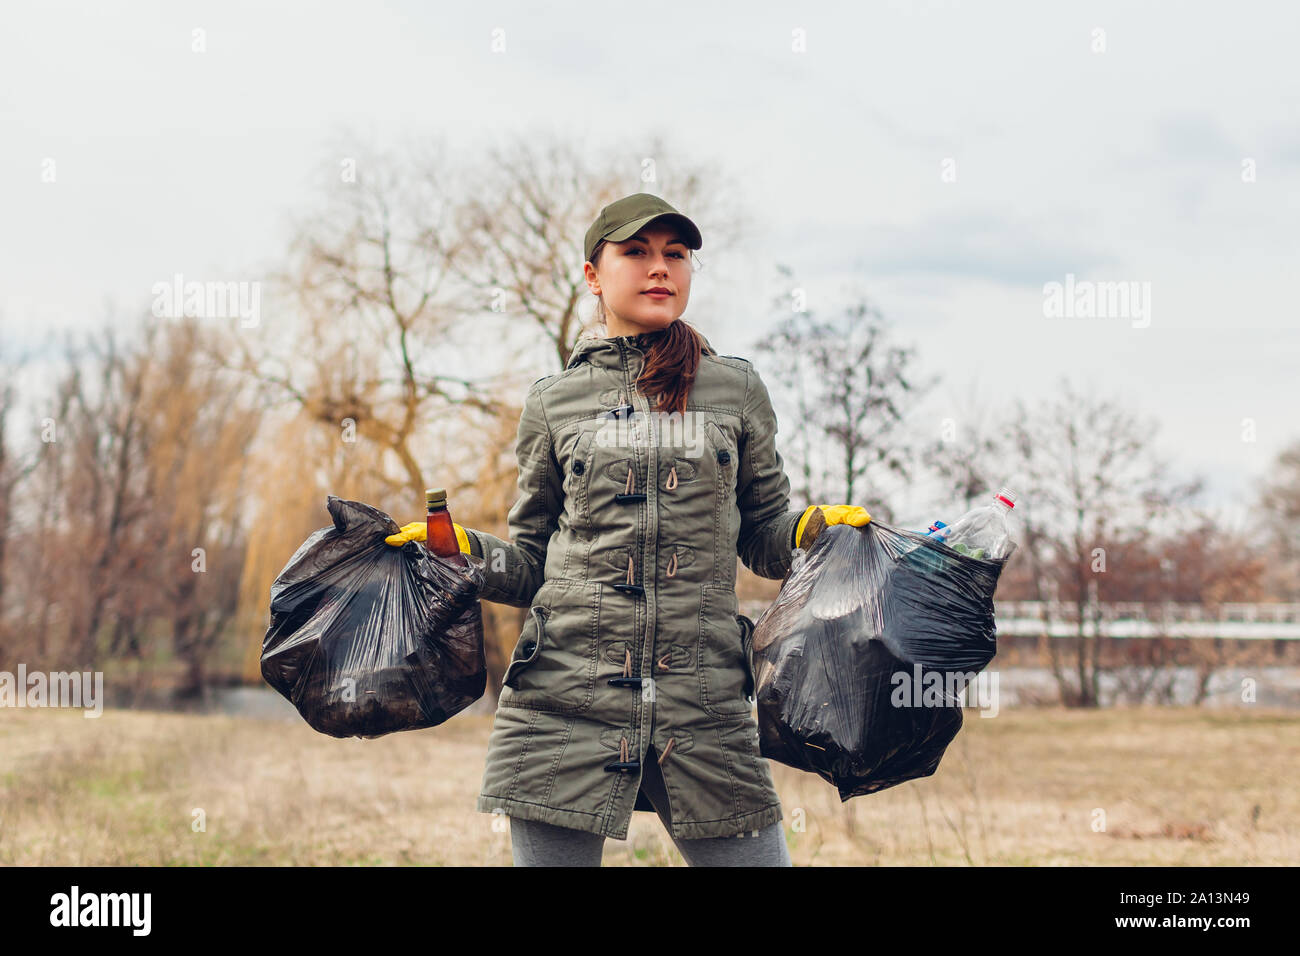 Litter picking. Woman volunteer cleaning up the trash in park. Picking up garbage outdoors. Ecology and environment concept. Saving planet Stock Photo